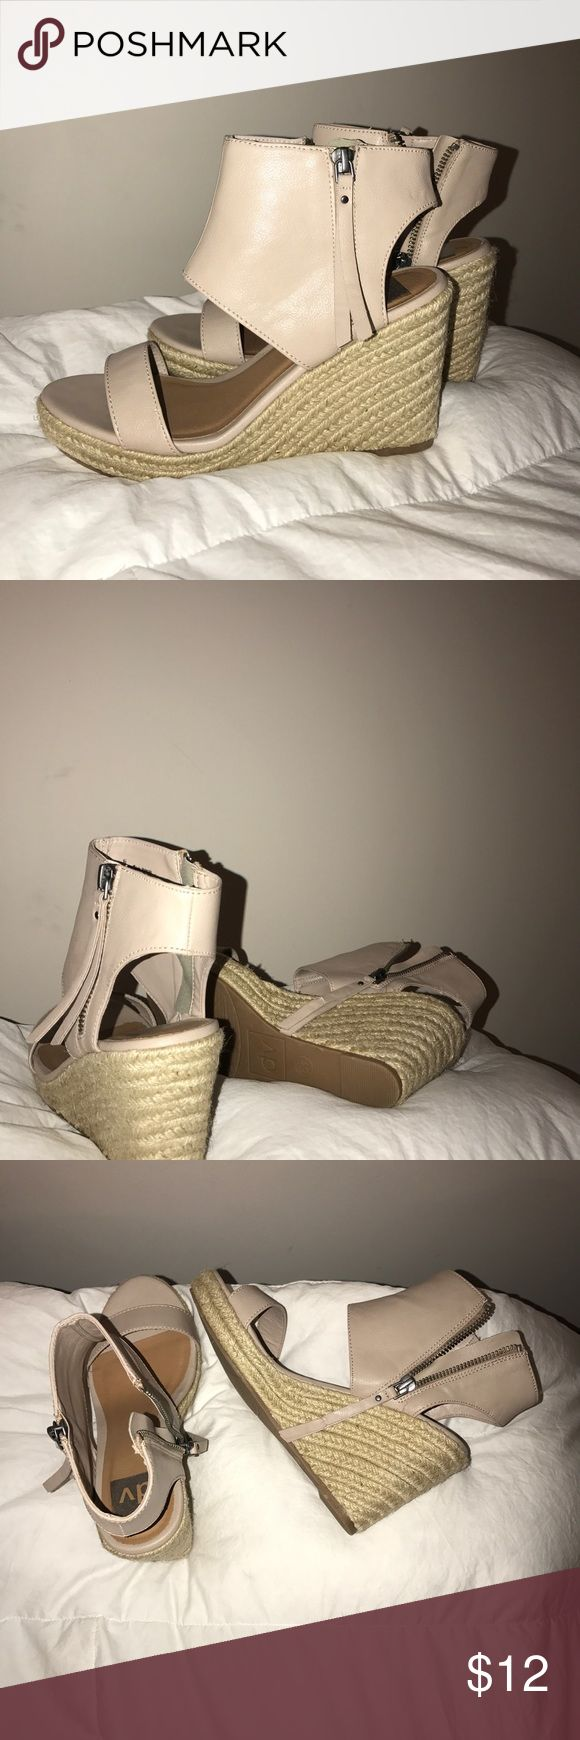 "6.5 Wedge Sandals Summer style wedge sandals  Tan color  Slight wear, no major flaws  Size women's 6.5  Fits true to size  Comfortable  Zips up on inside of foot  Barely worn, like new  Not sure what brand, just say ""dv"" DV by Dolce Vita Shoes Wedges Summer Beach Beachy Tan Beige Zip-up Fashion Chic Cute Heels"